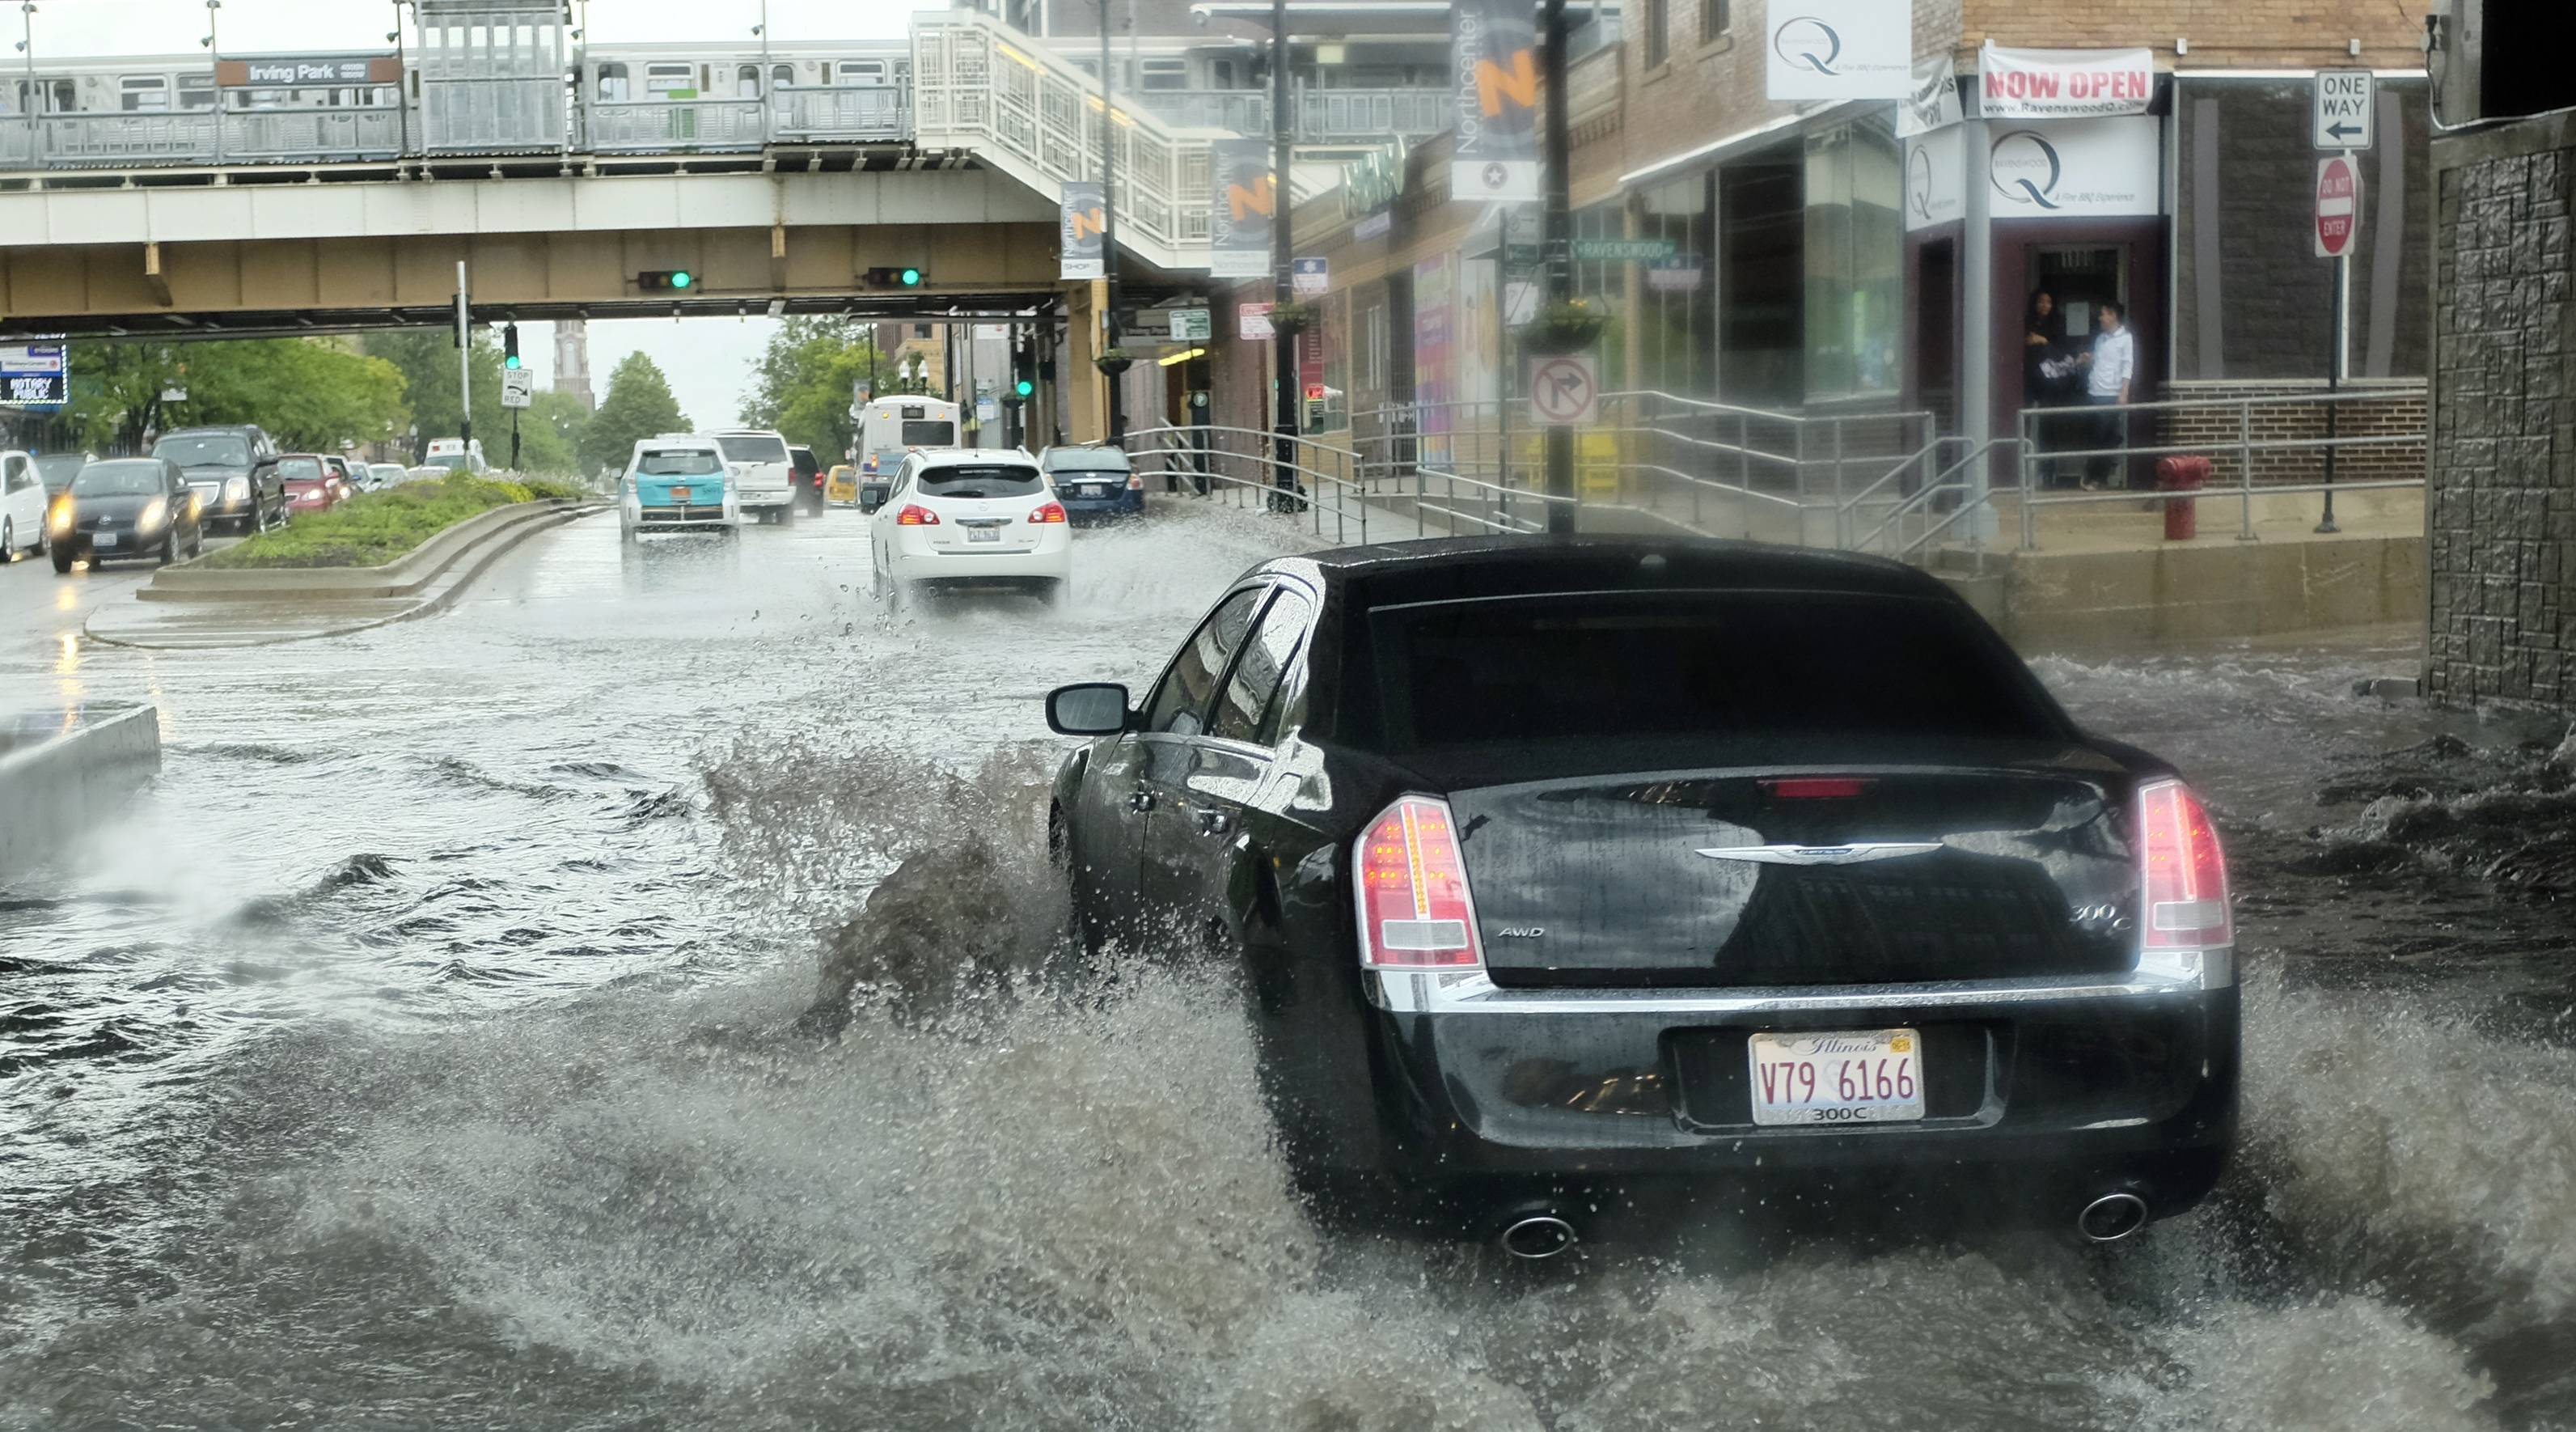 A car drives through a flooded street Saturday in Chicago.